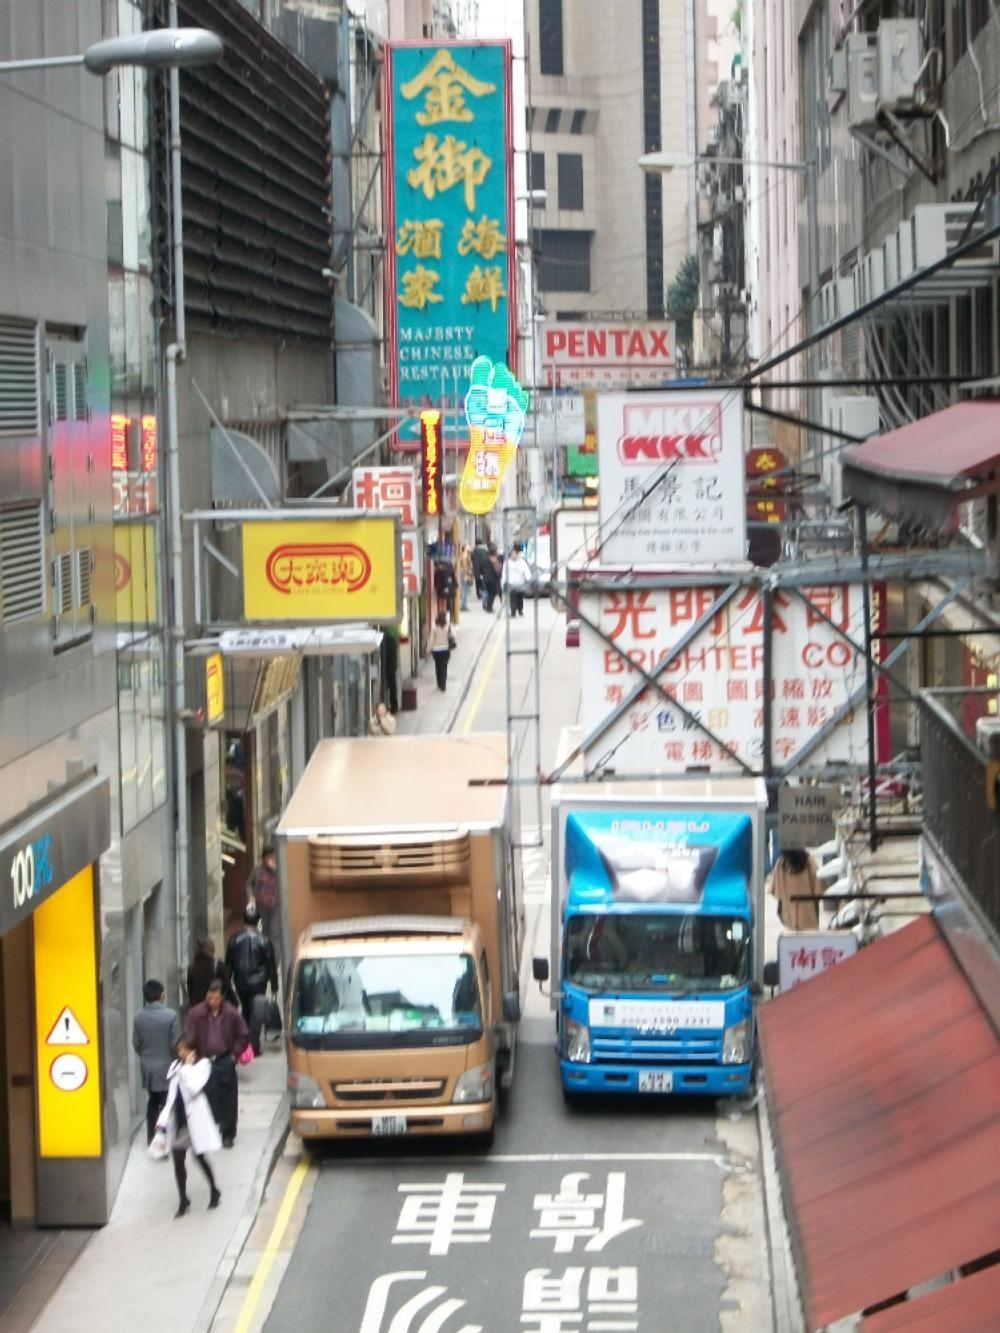 Two trucks in the middle of Hong Kong city street